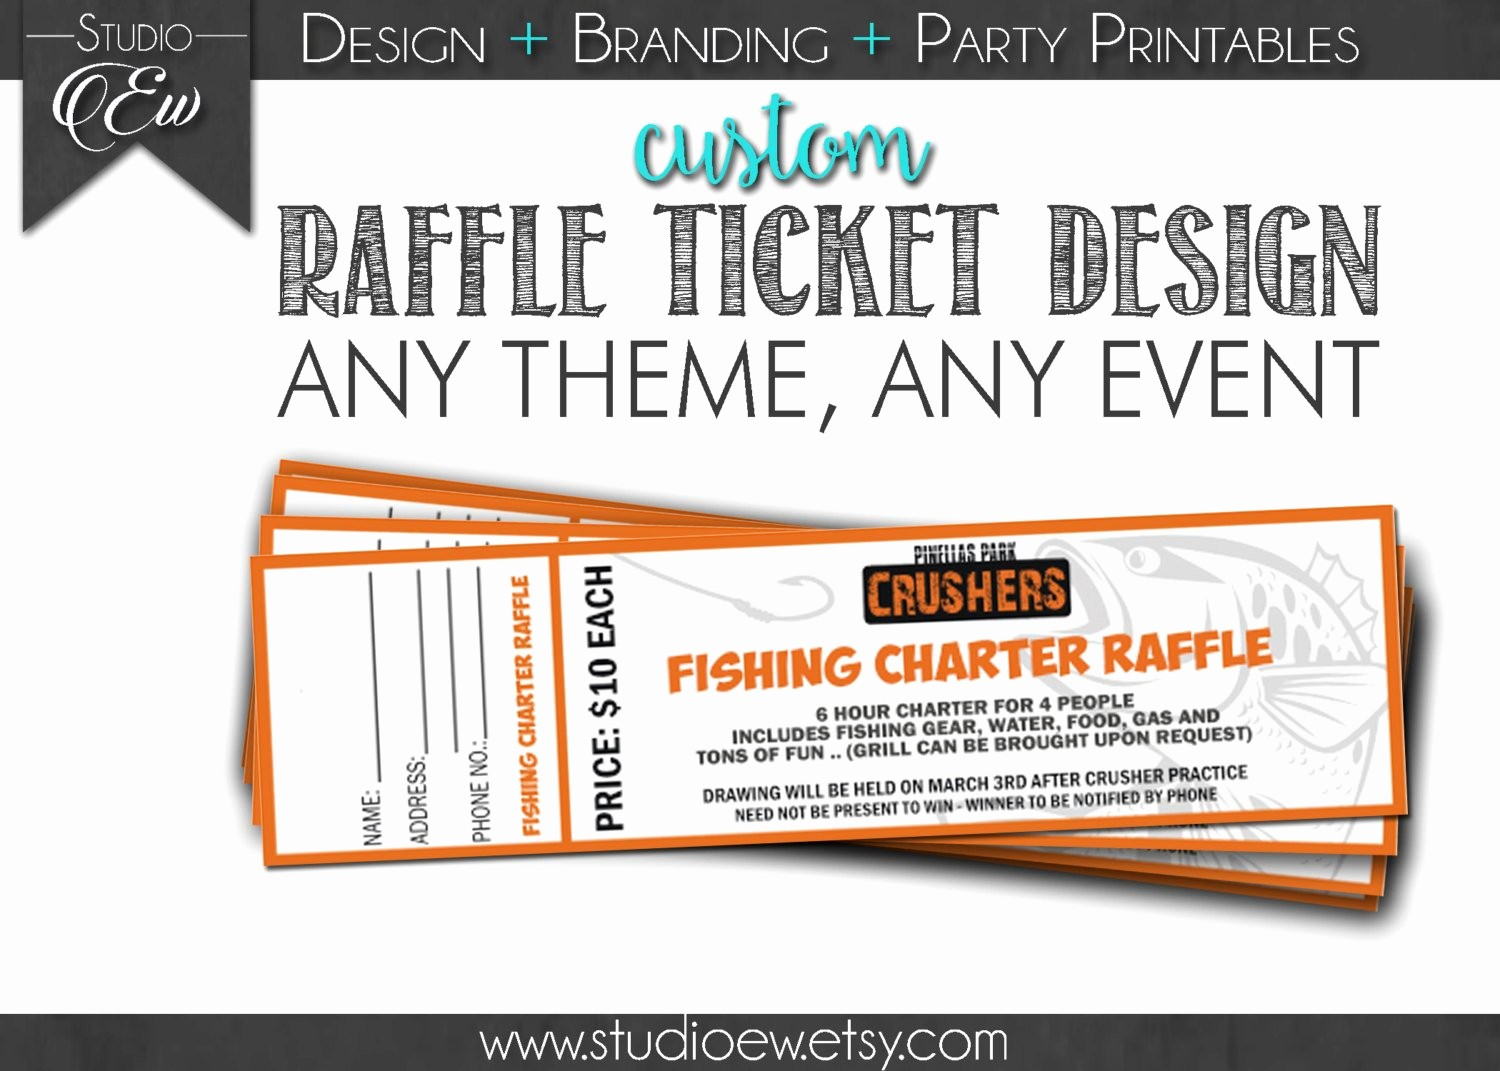 Raffle Ticket Samples for Fundraisers Unique Custom Raffle Ticket Design Any event Any theme Fundraiser